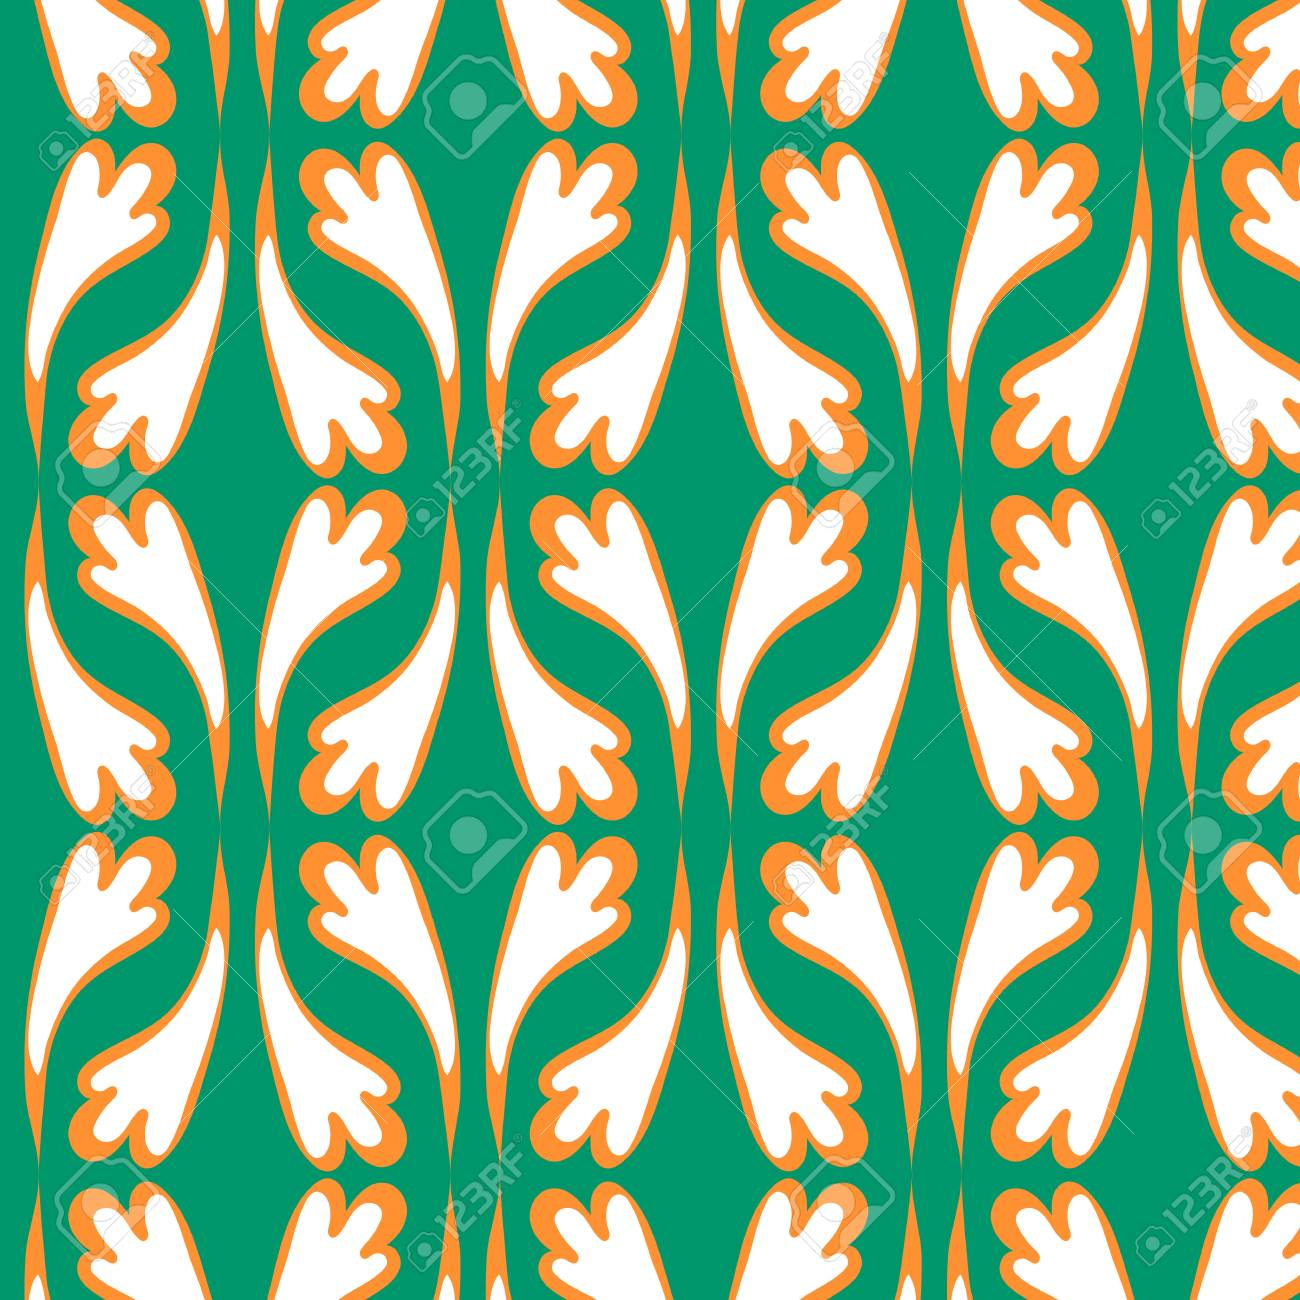 Vector Illustration Of A 20s Wallpaper Seamless Patterns Royalty ...